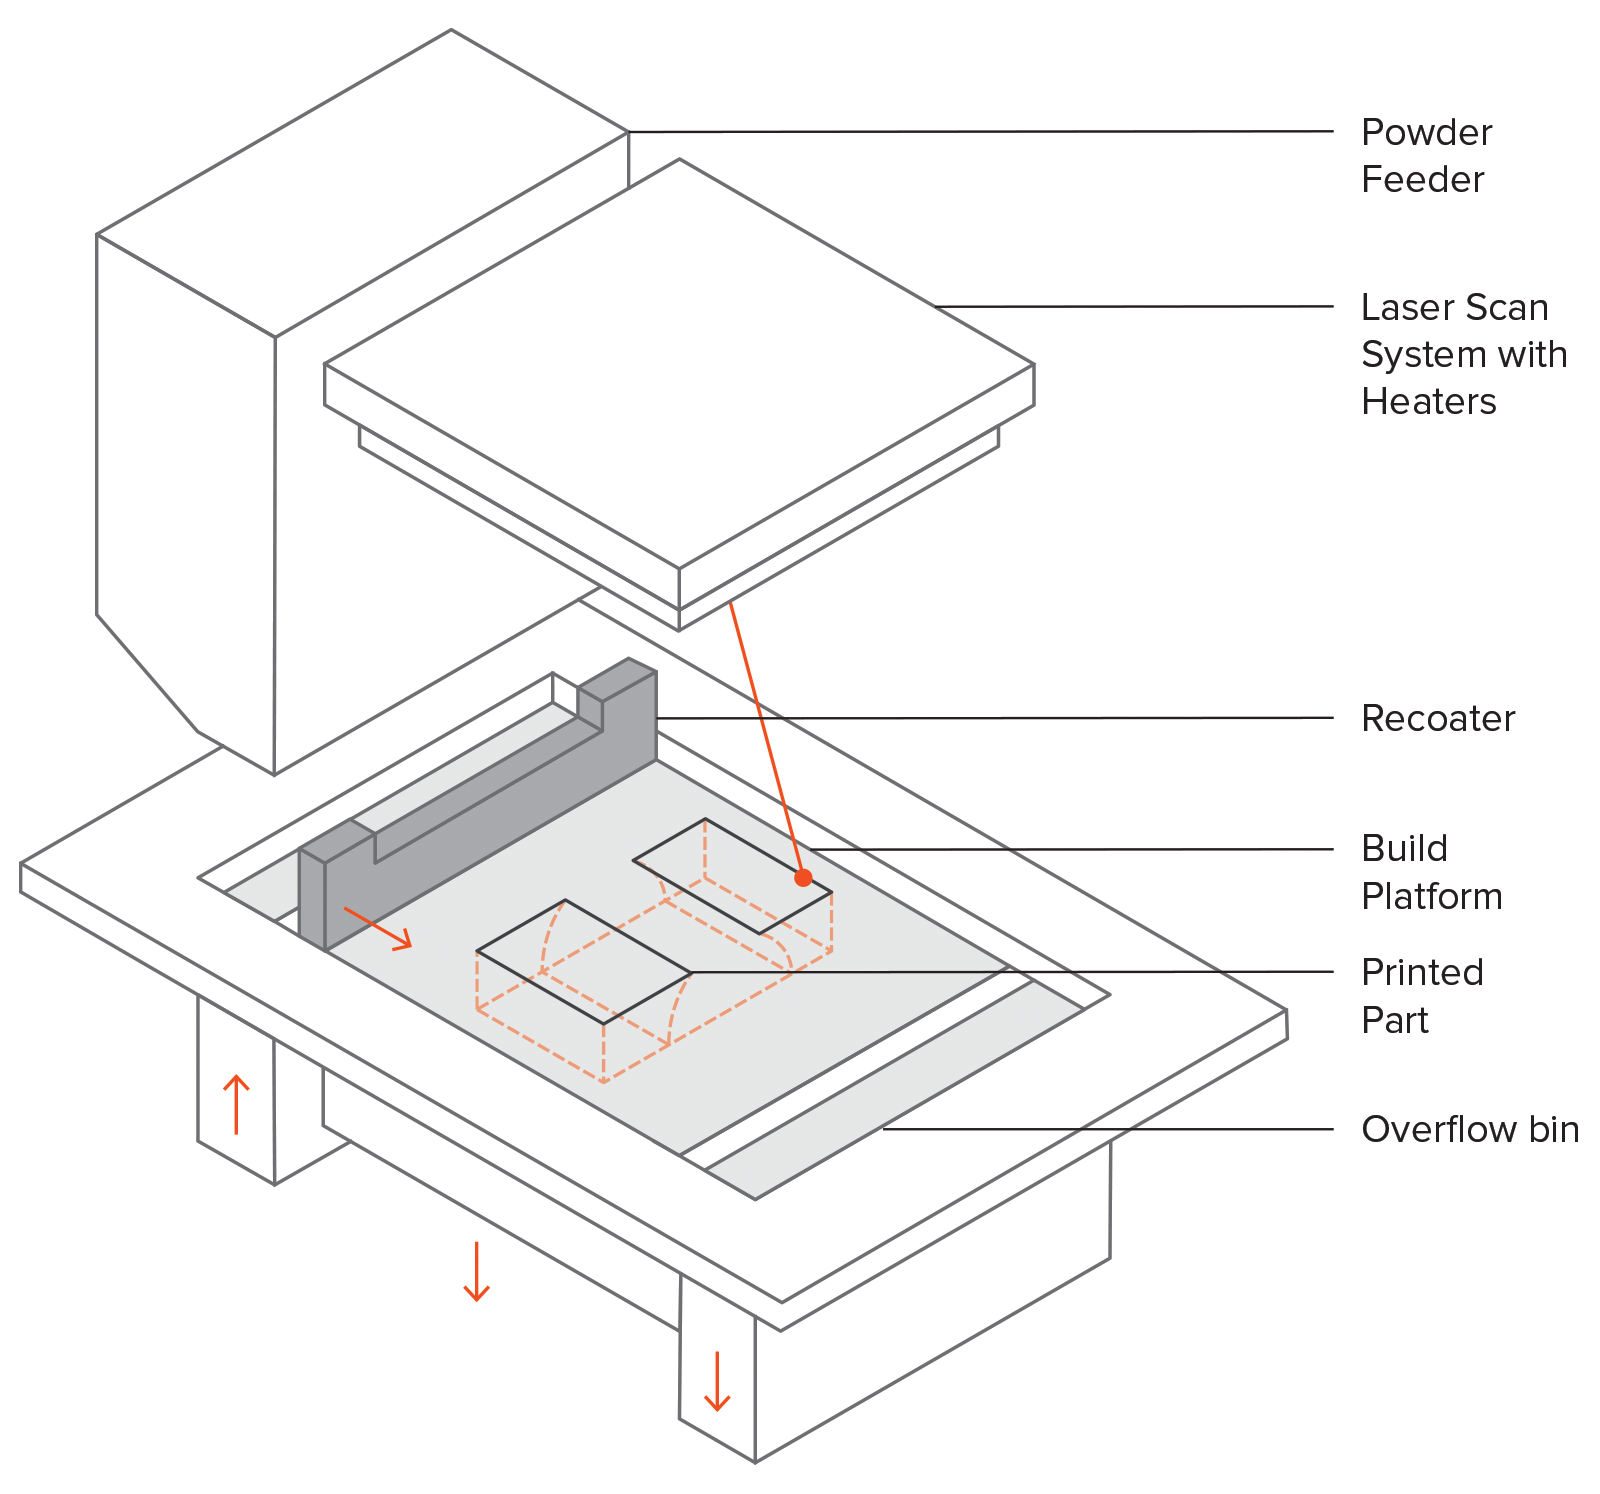 How to design parts for SLS 3D Printing | 3D Hubs